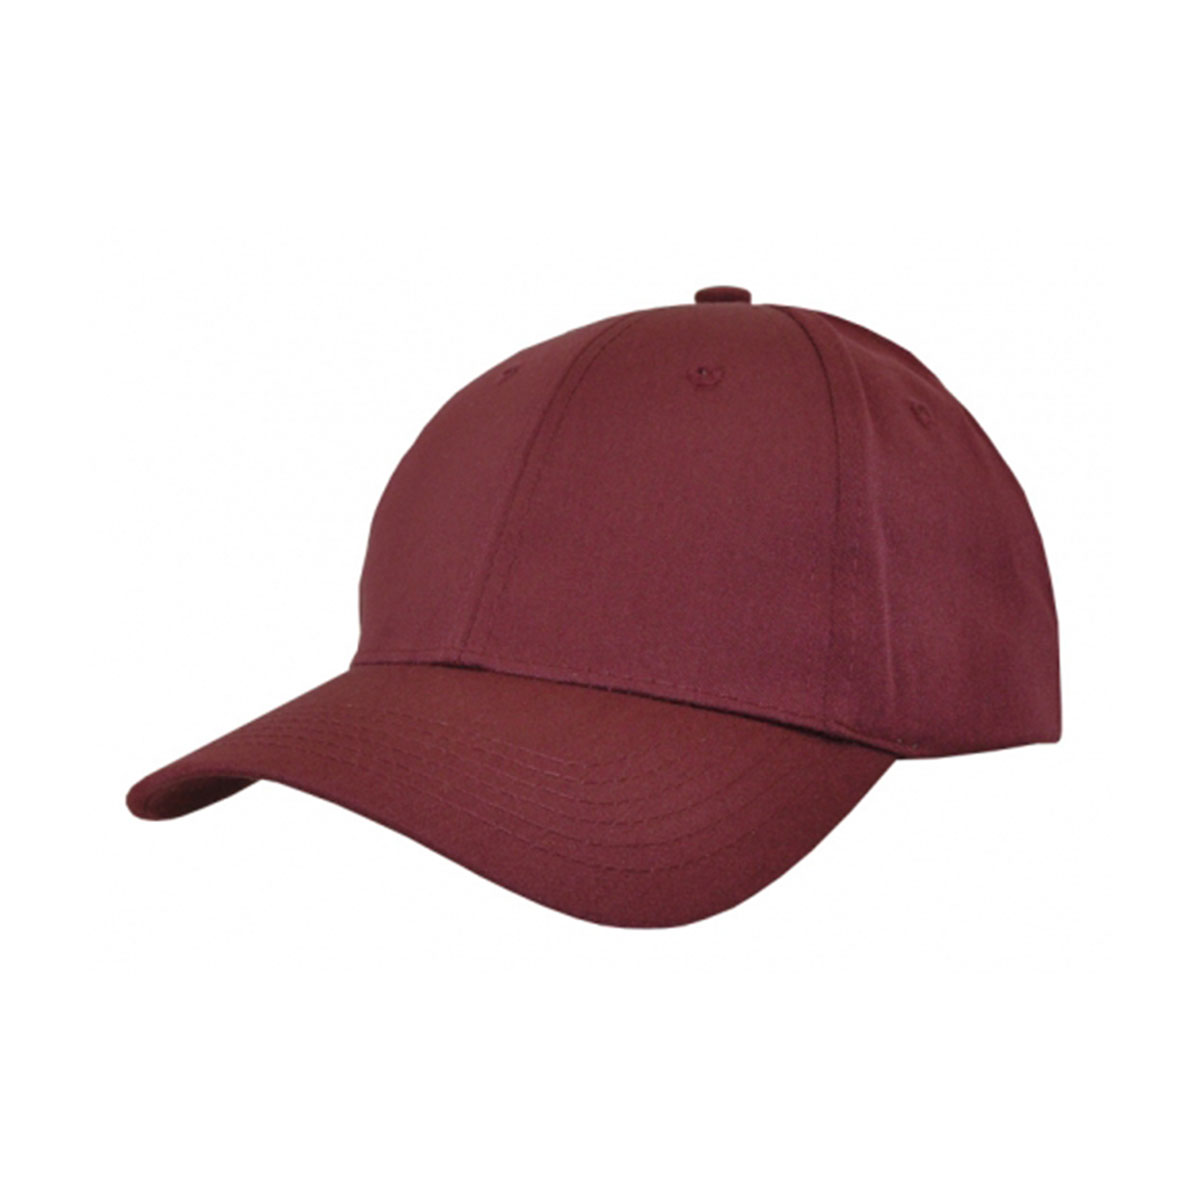 School Sports Cap-Maroon